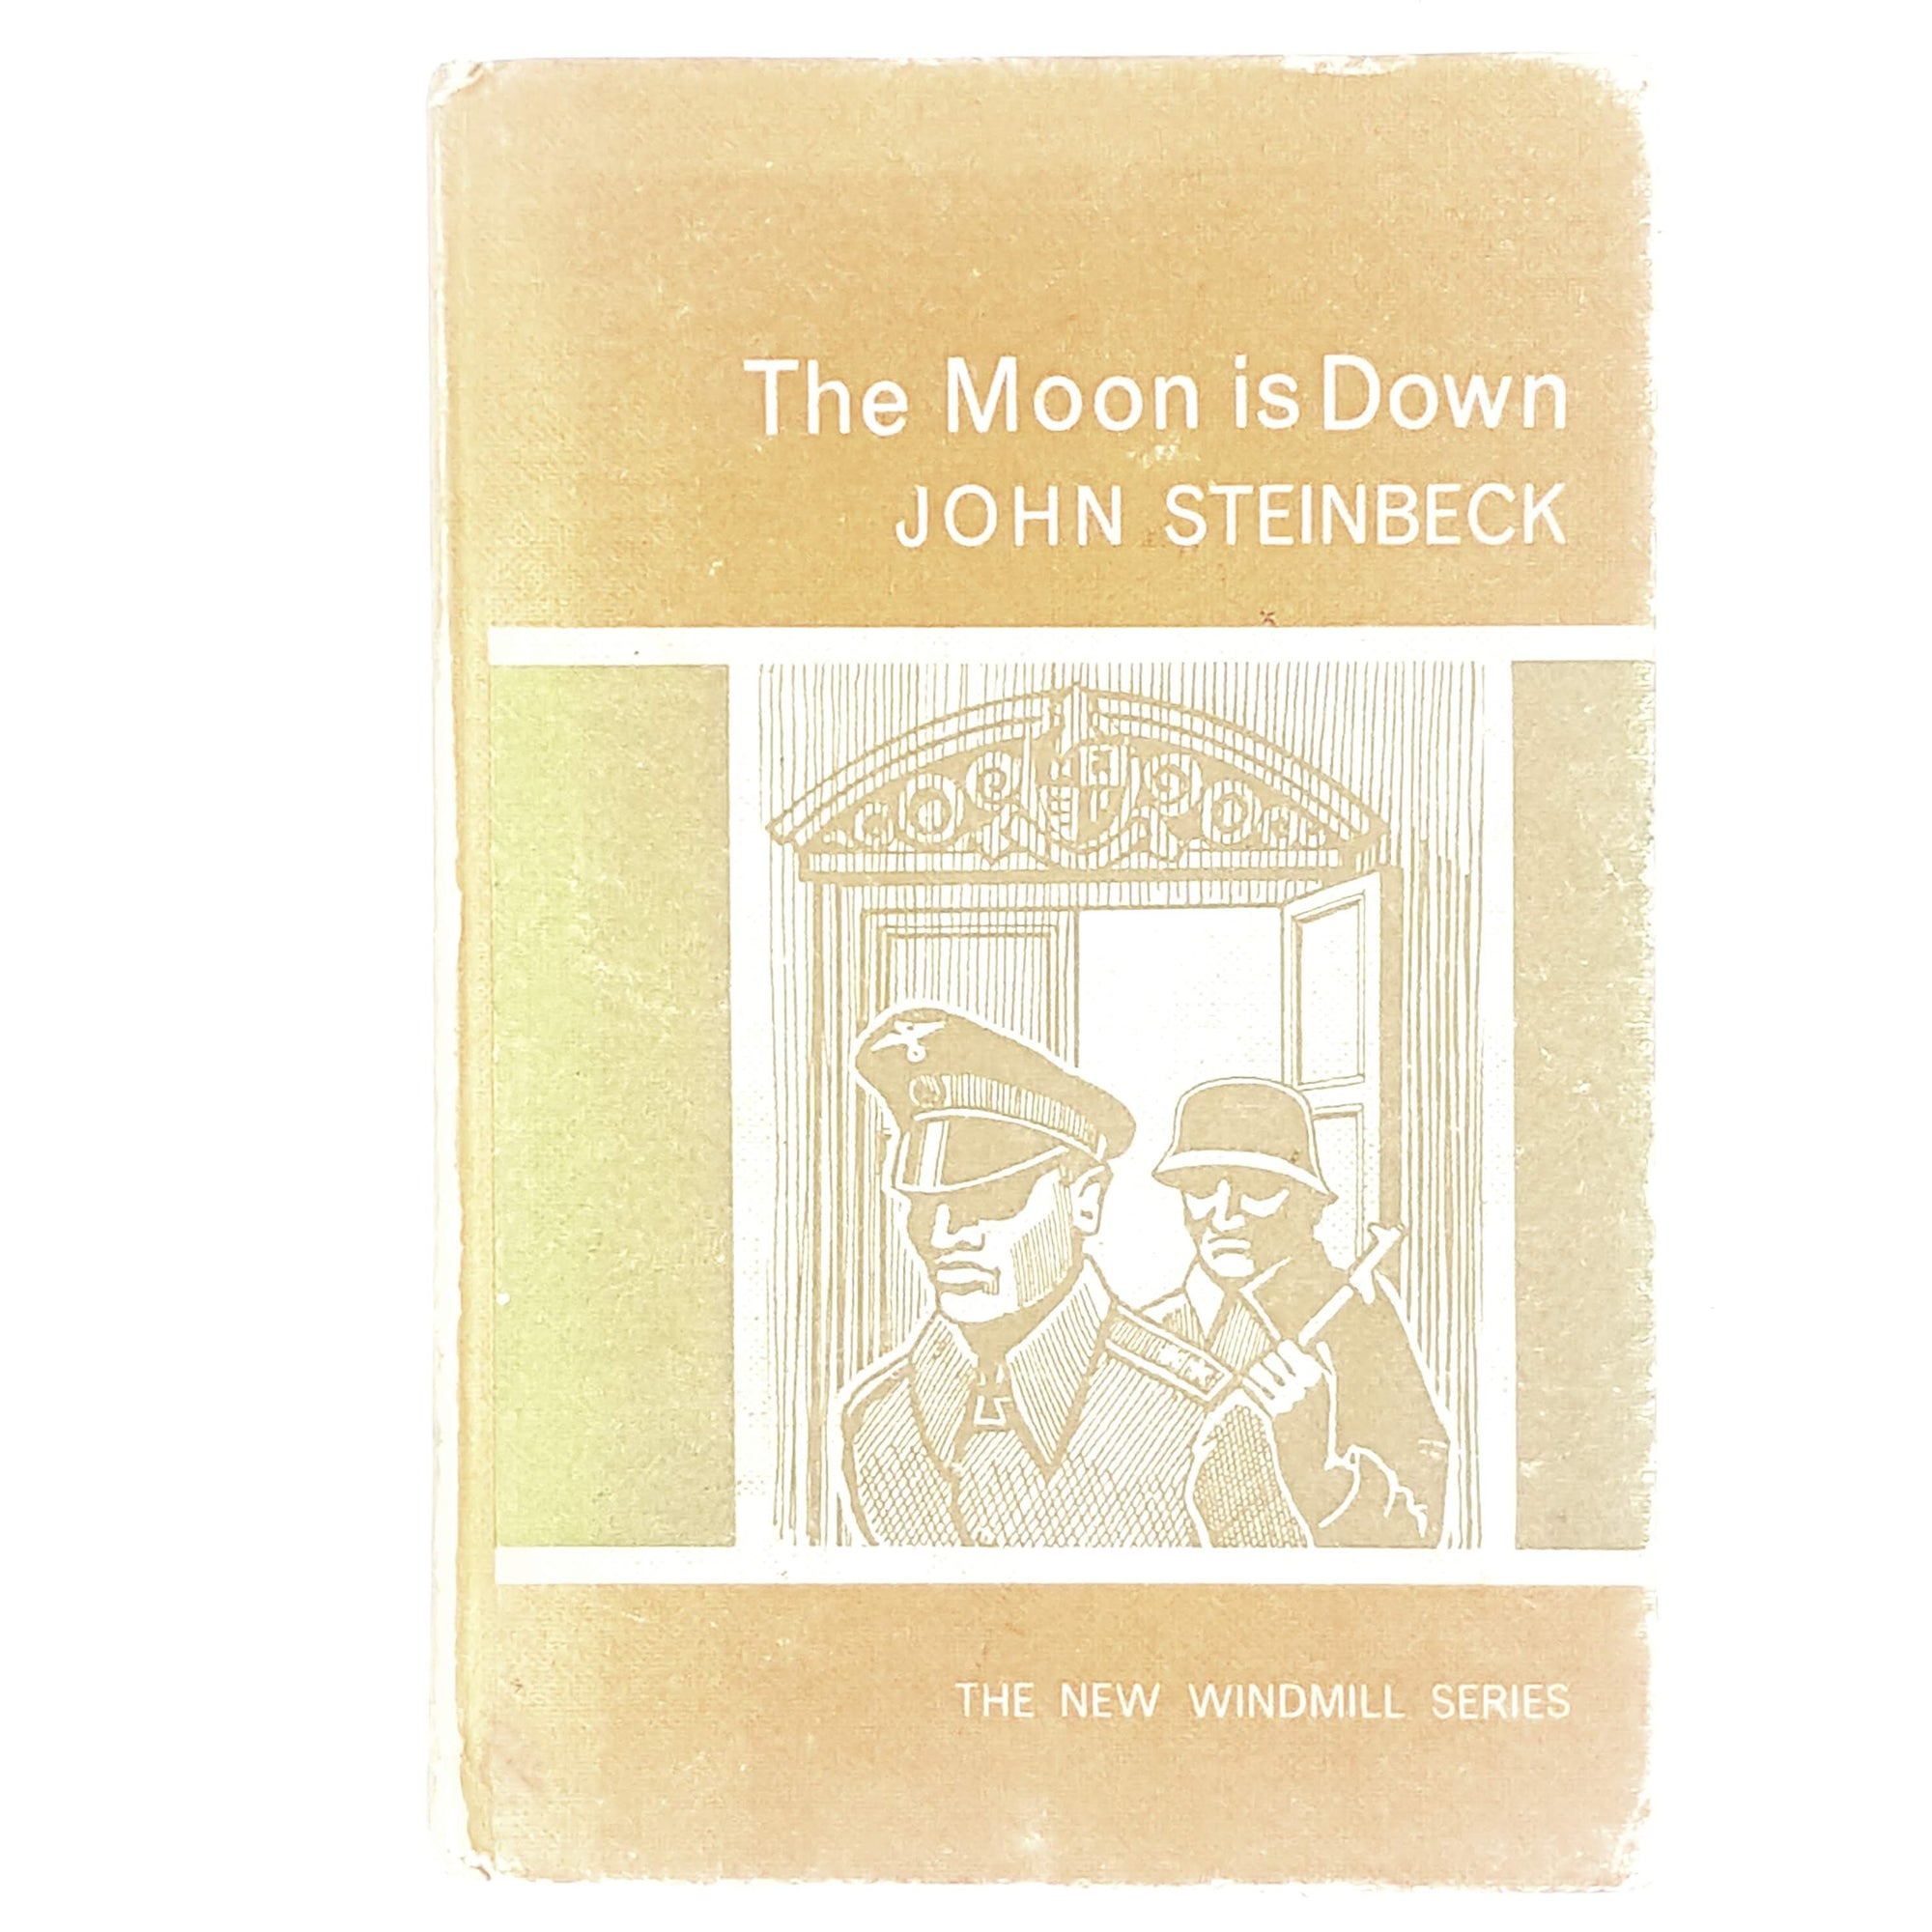 John Steinbeck's The Moon is Down 1966